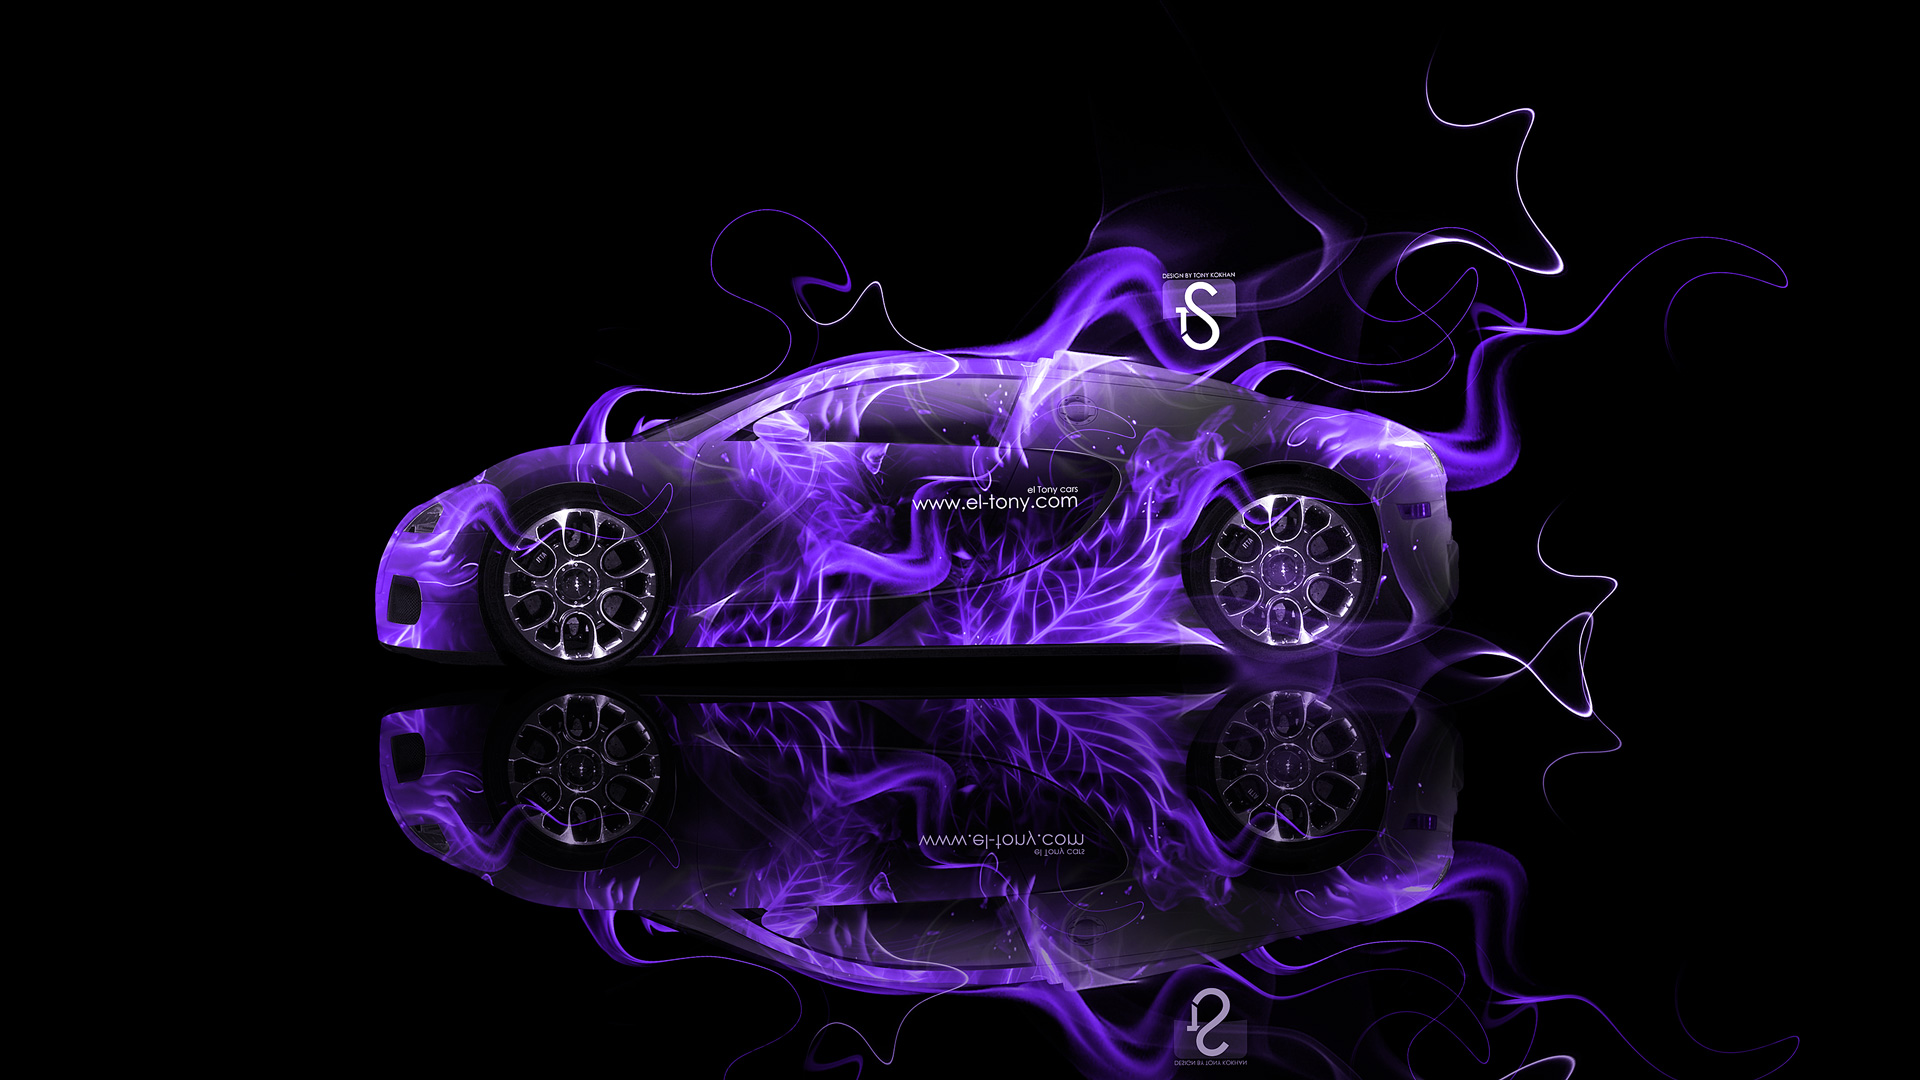 Superieur Bugatti Veyron Violet Fire Abstract Car 2013 HD